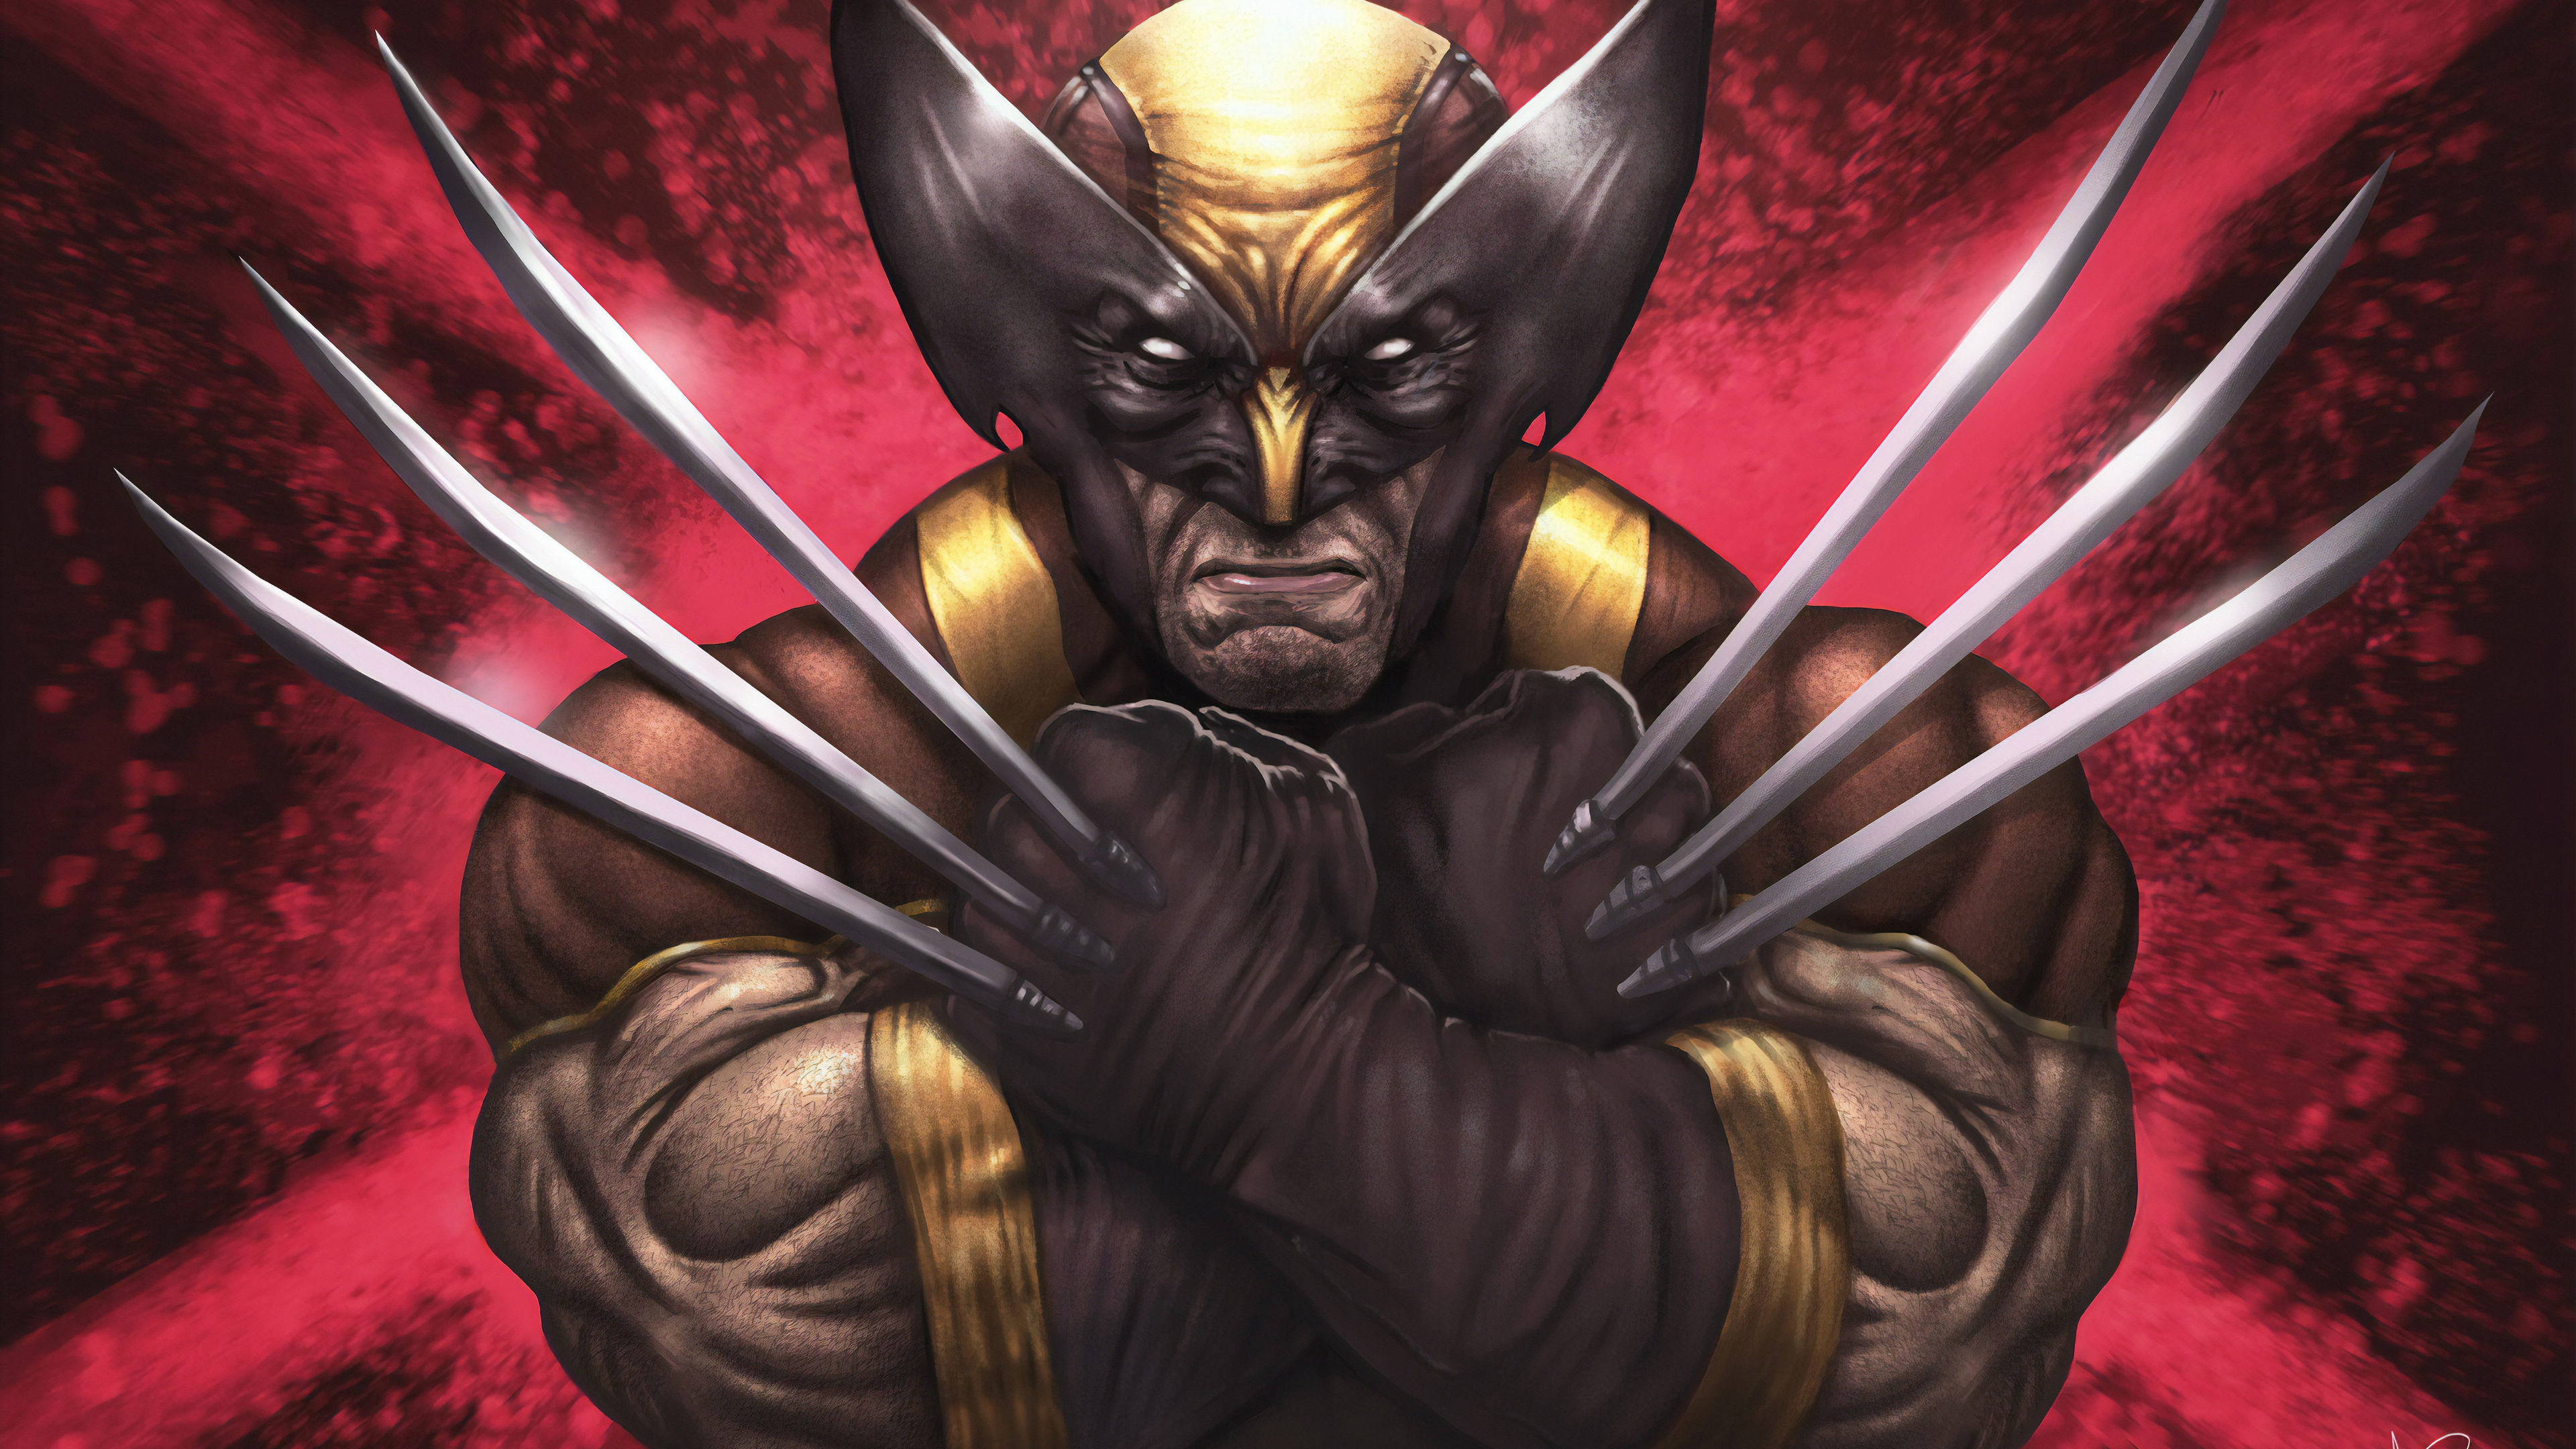 wolverine x men 1570394388 - Wolverine X Men - wolverine wallpapers, superheroes wallpapers, hd-wallpapers, artwork wallpapers, artstation wallpapers, 4k-wallpapers